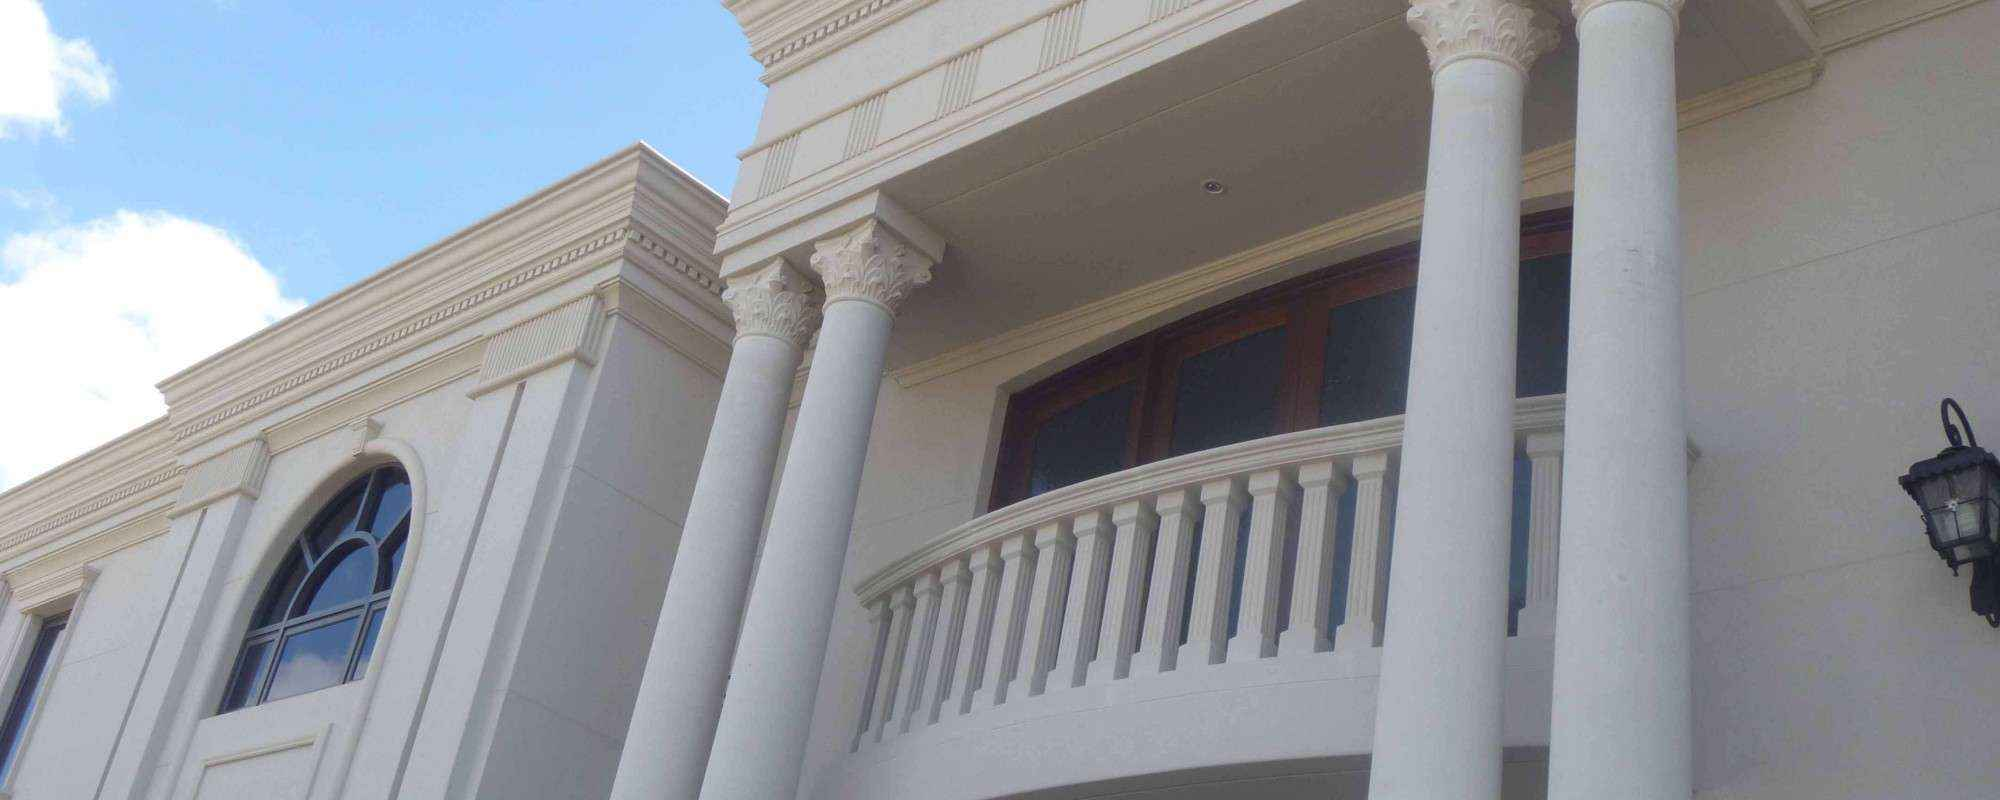 Window Moldings Exterior Perth Mouldings Perth Custom Mouldings Perth Tufftex Glass Roof Perth